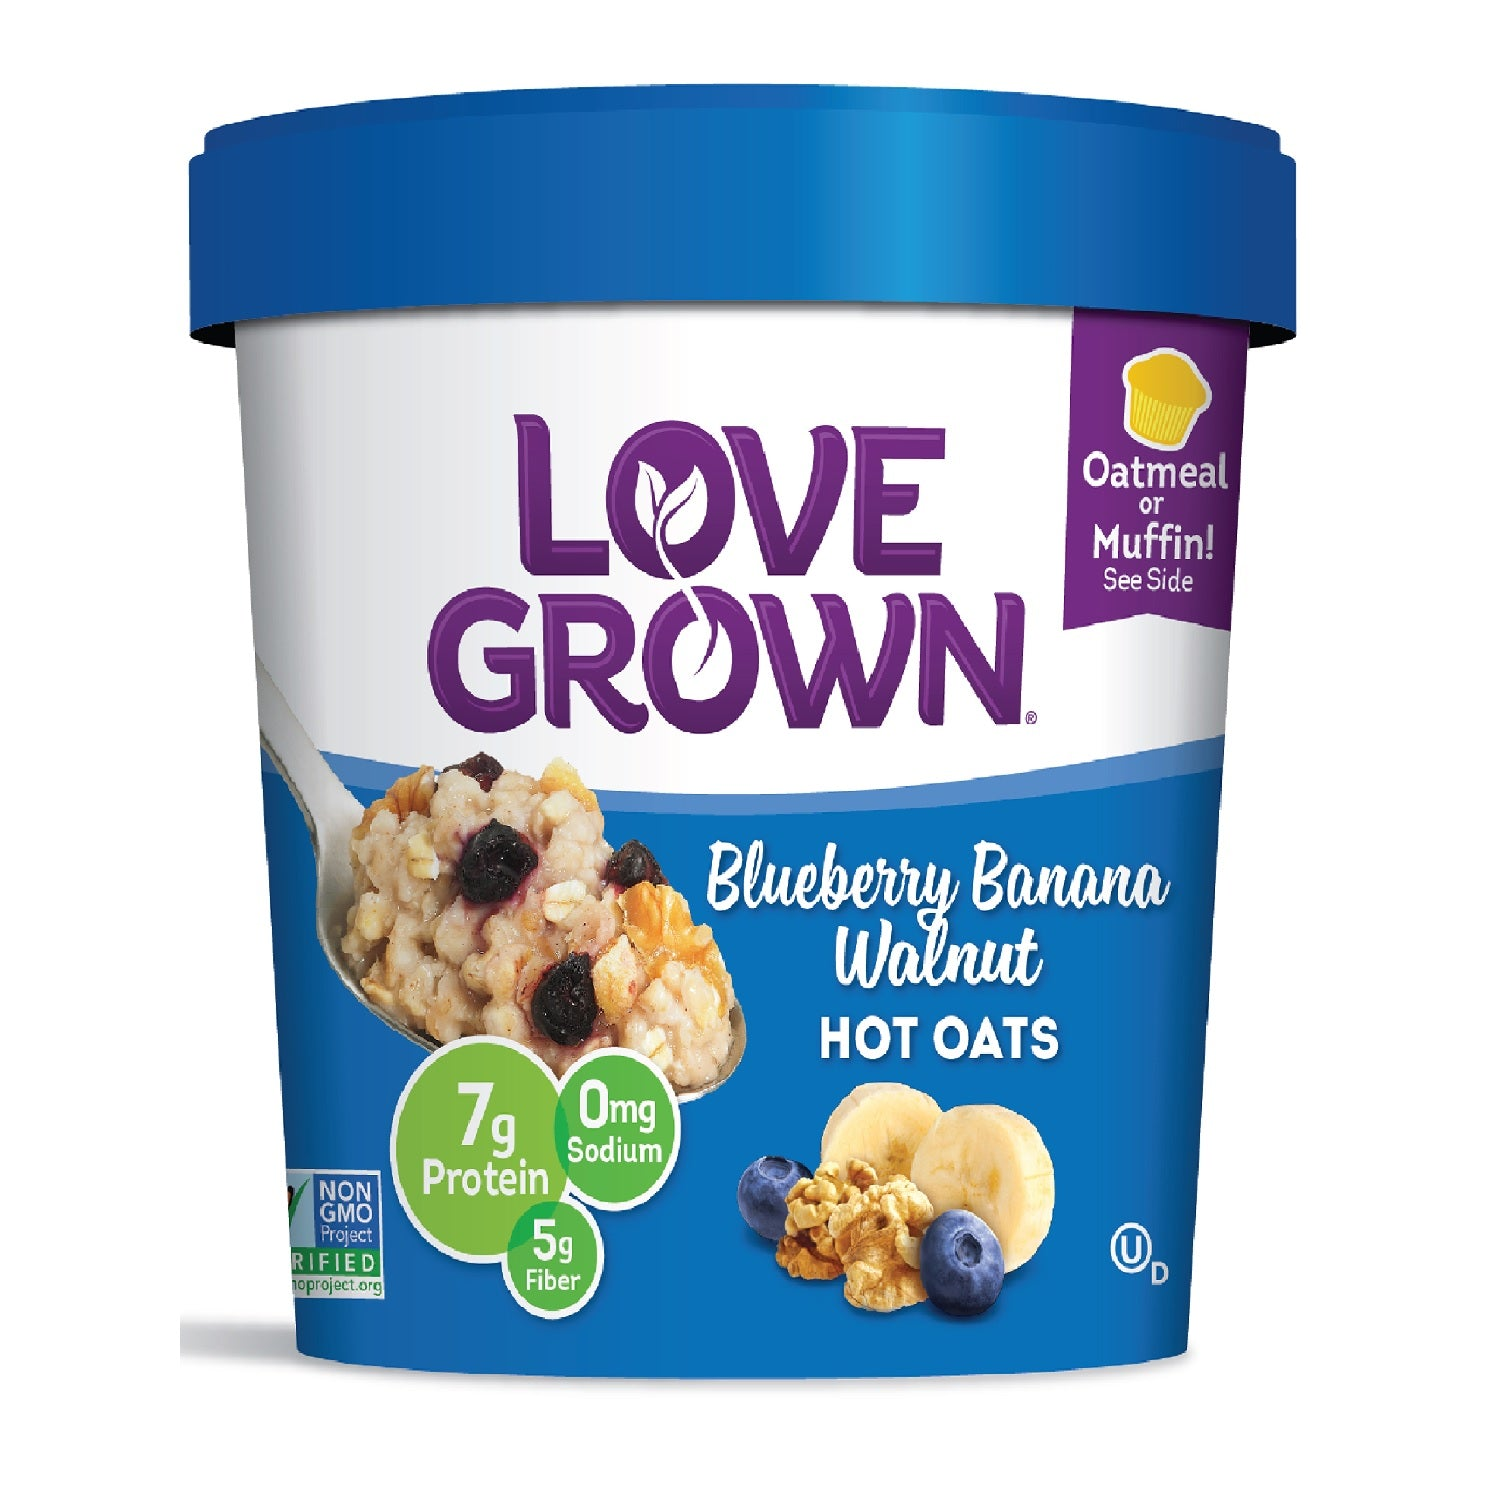 Love Grown Blueberry Banana Walnut Hot Oats, 63g